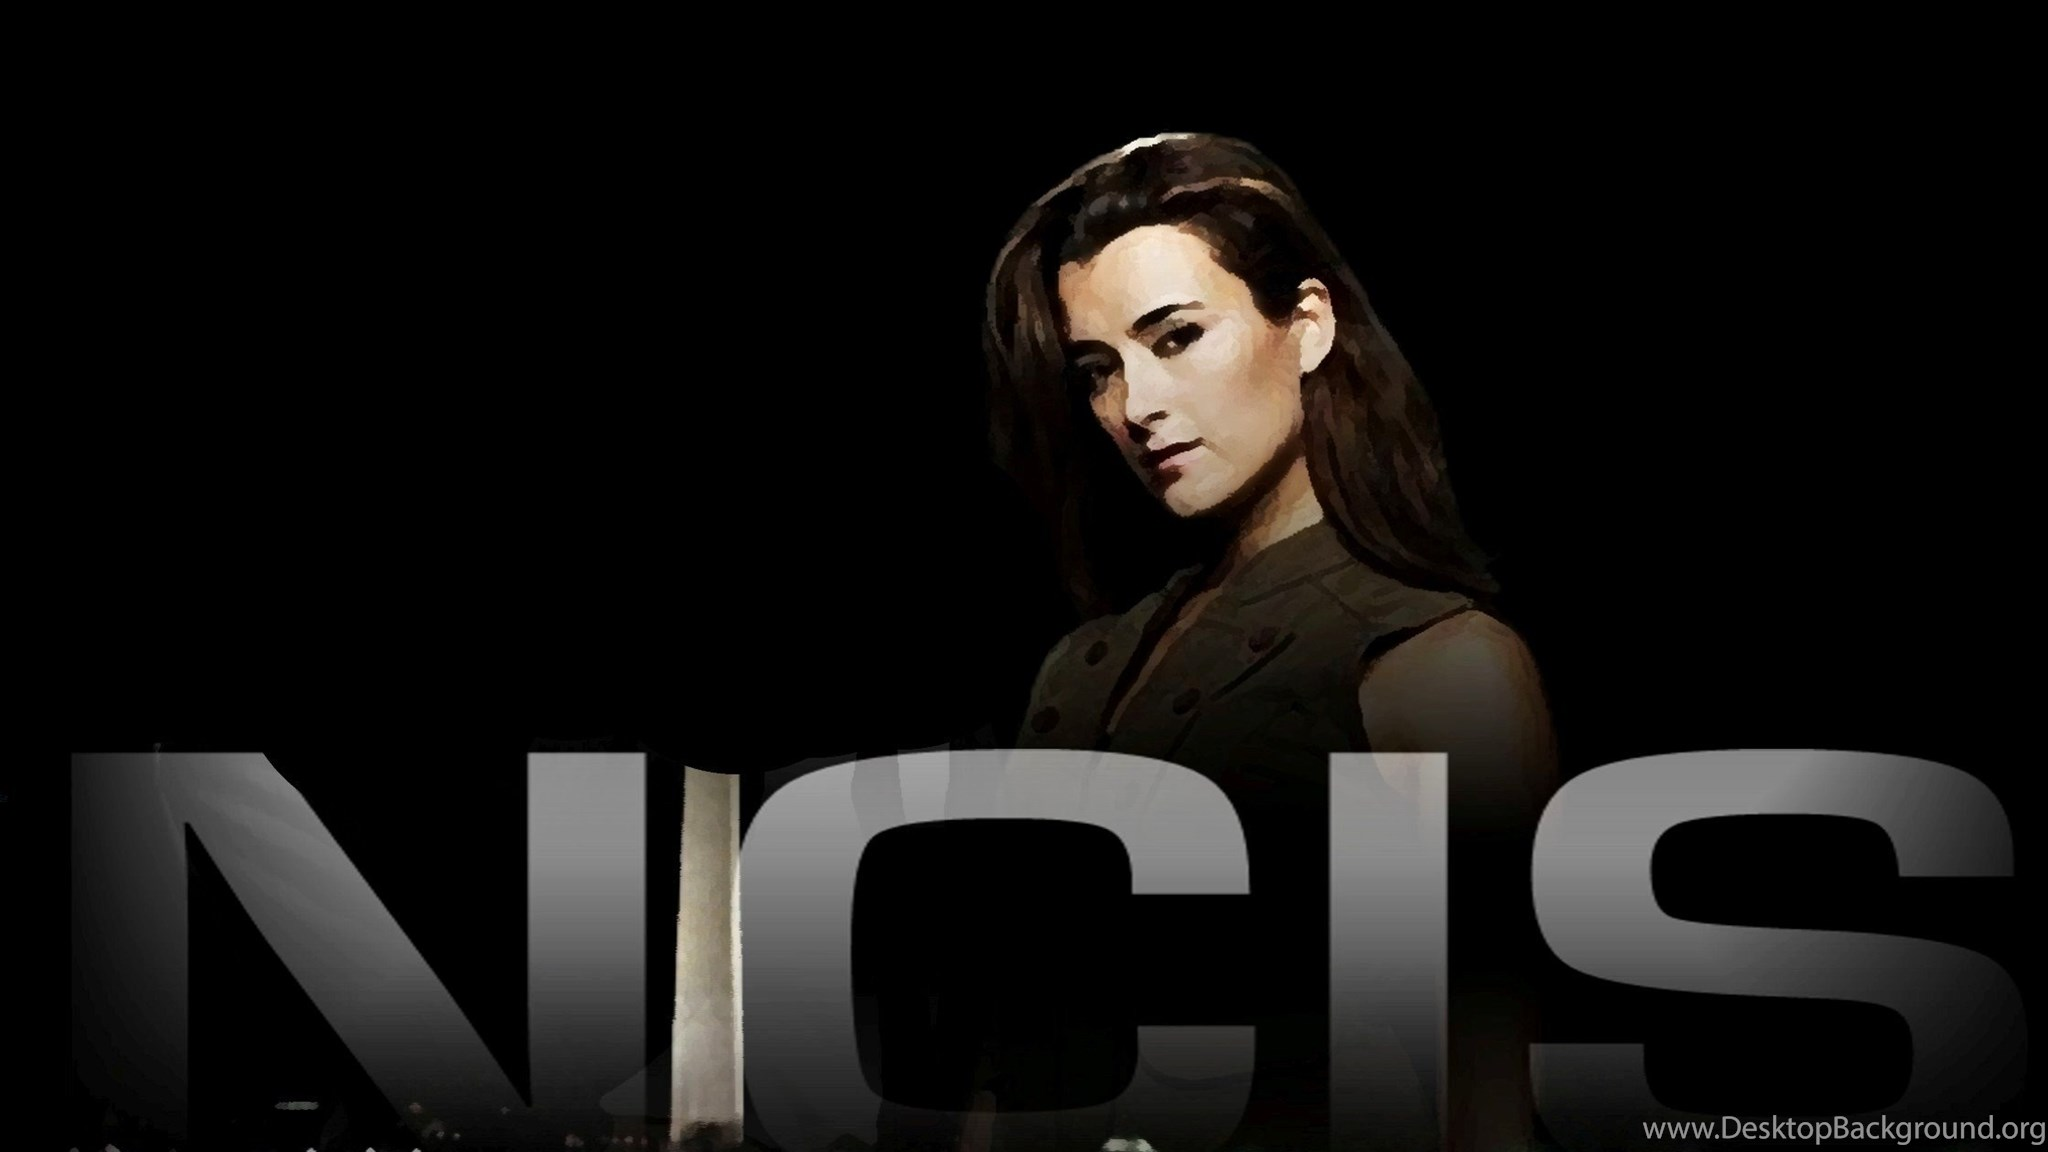 Cote Cote De Pablo Wallpapers 6857200 Fanpop Desktop Background